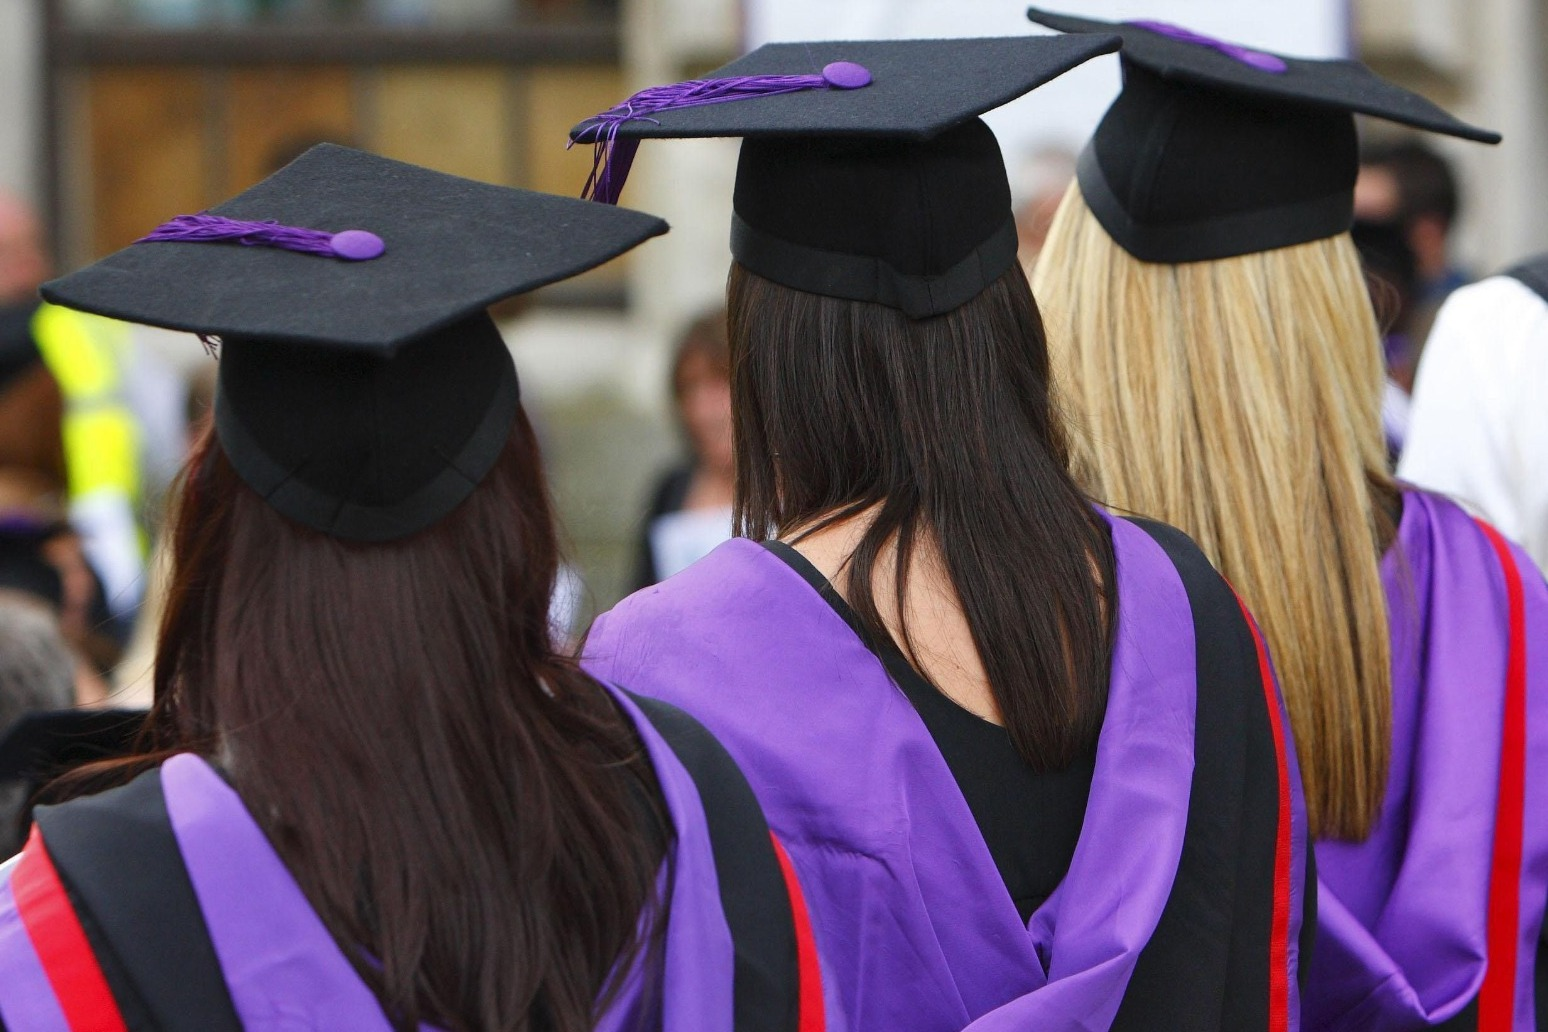 Universities \'may be at greater risk\' due to over-reliance on Chinese students